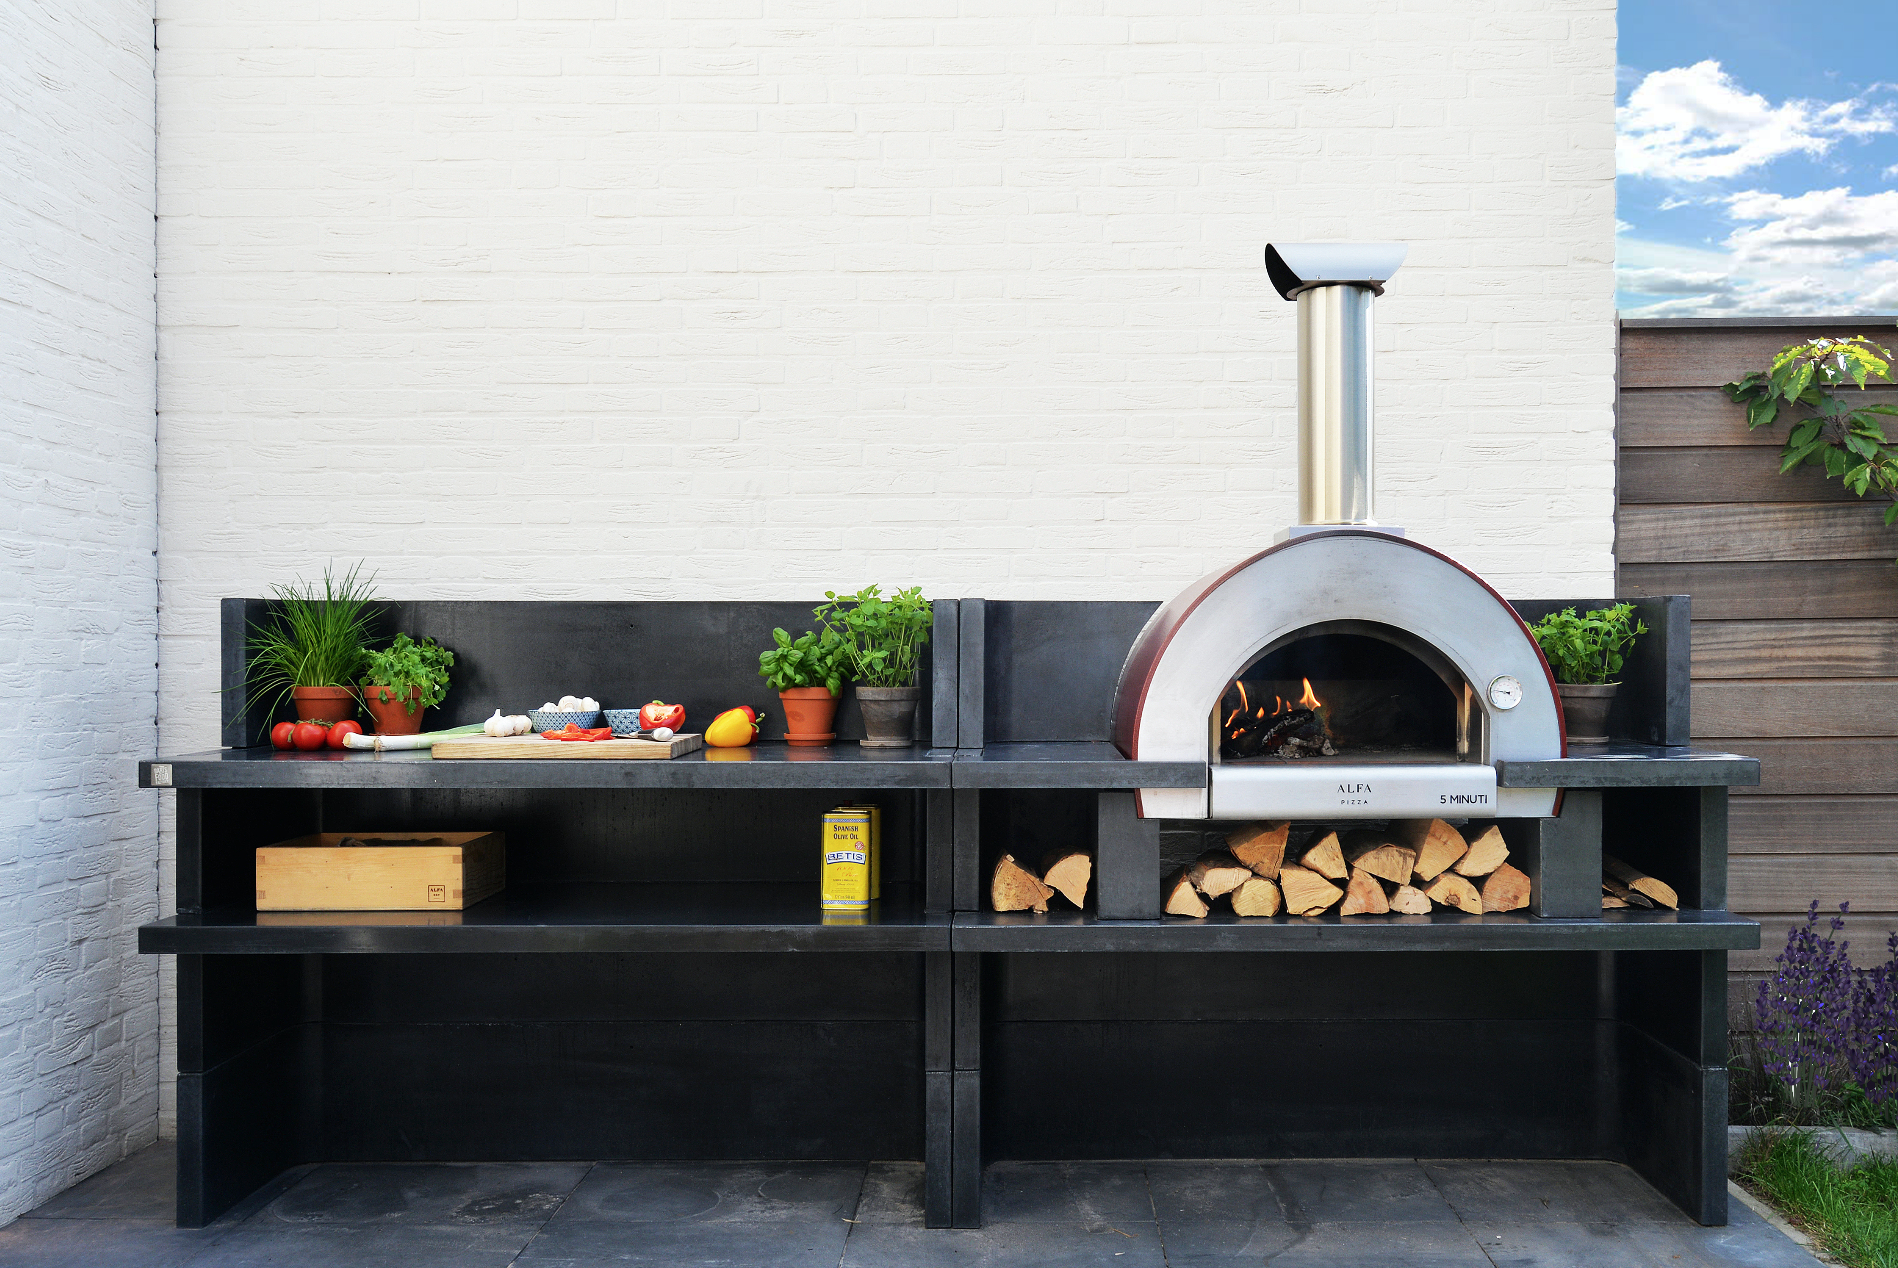 How To Incorporate An Alfa Into Your Outdoor Kitchen